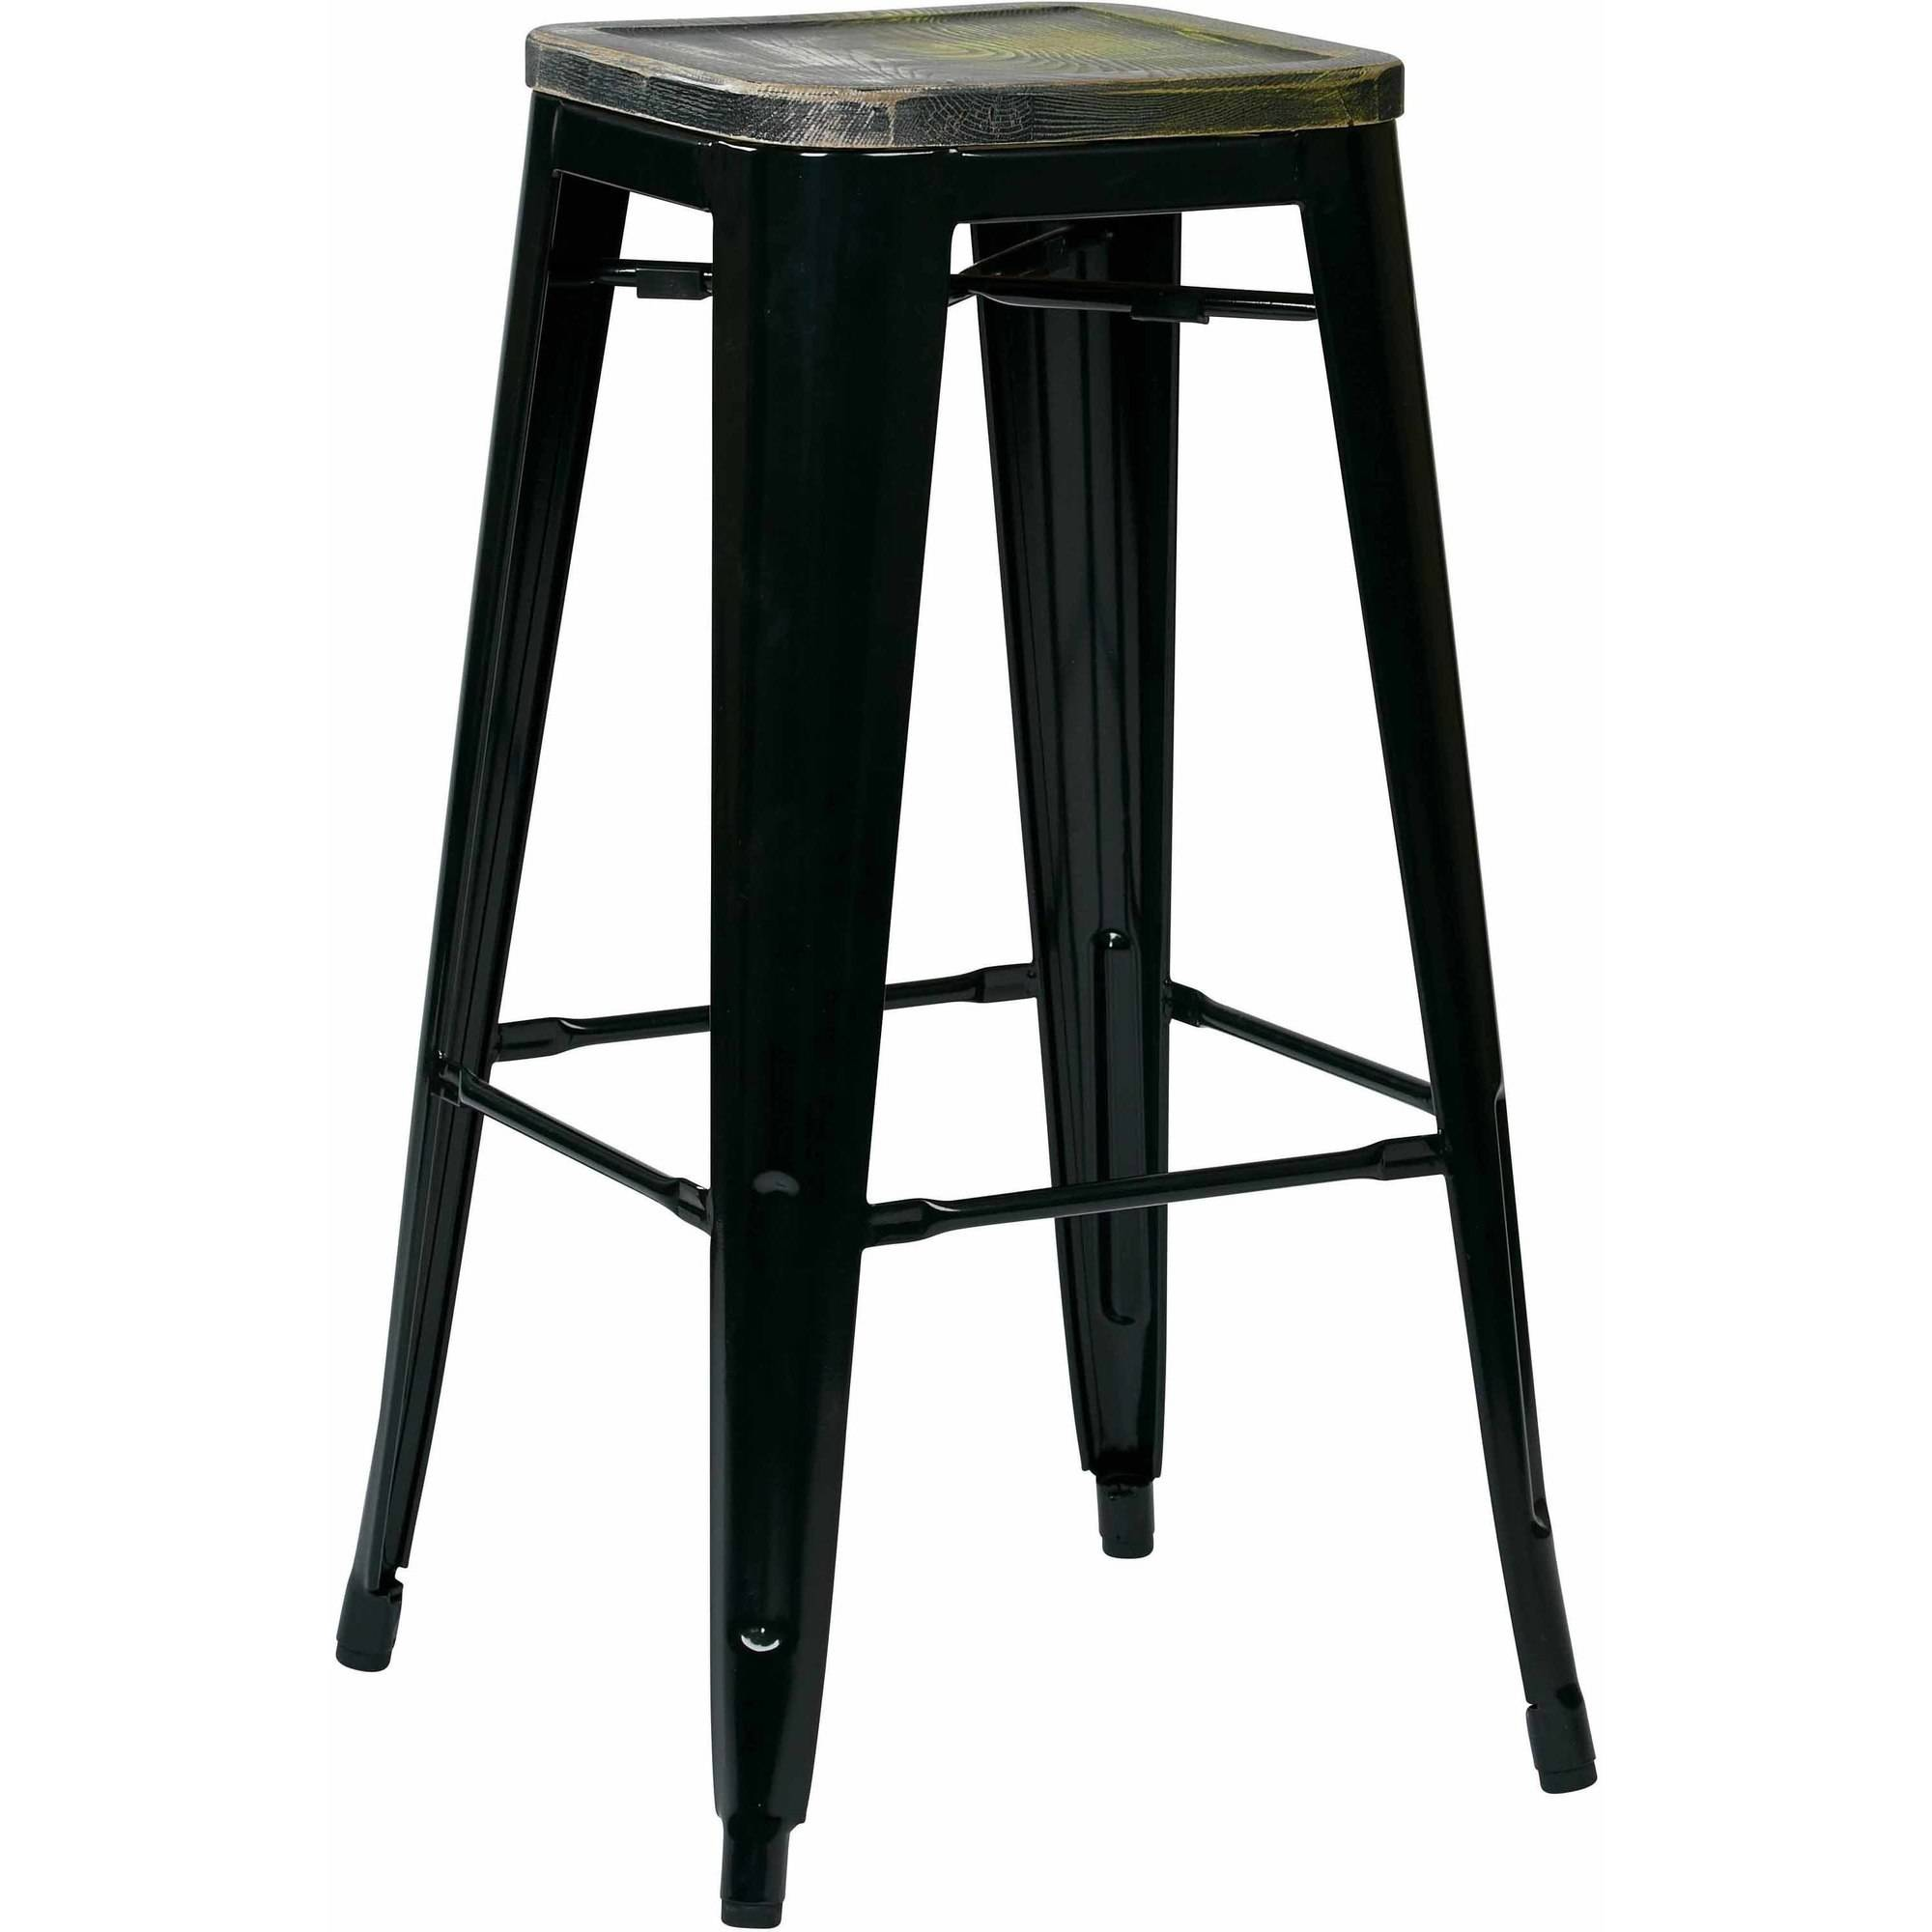 "Bristow 30"" Metal Barstool with Vintage Wood Seat, 4 Pack"